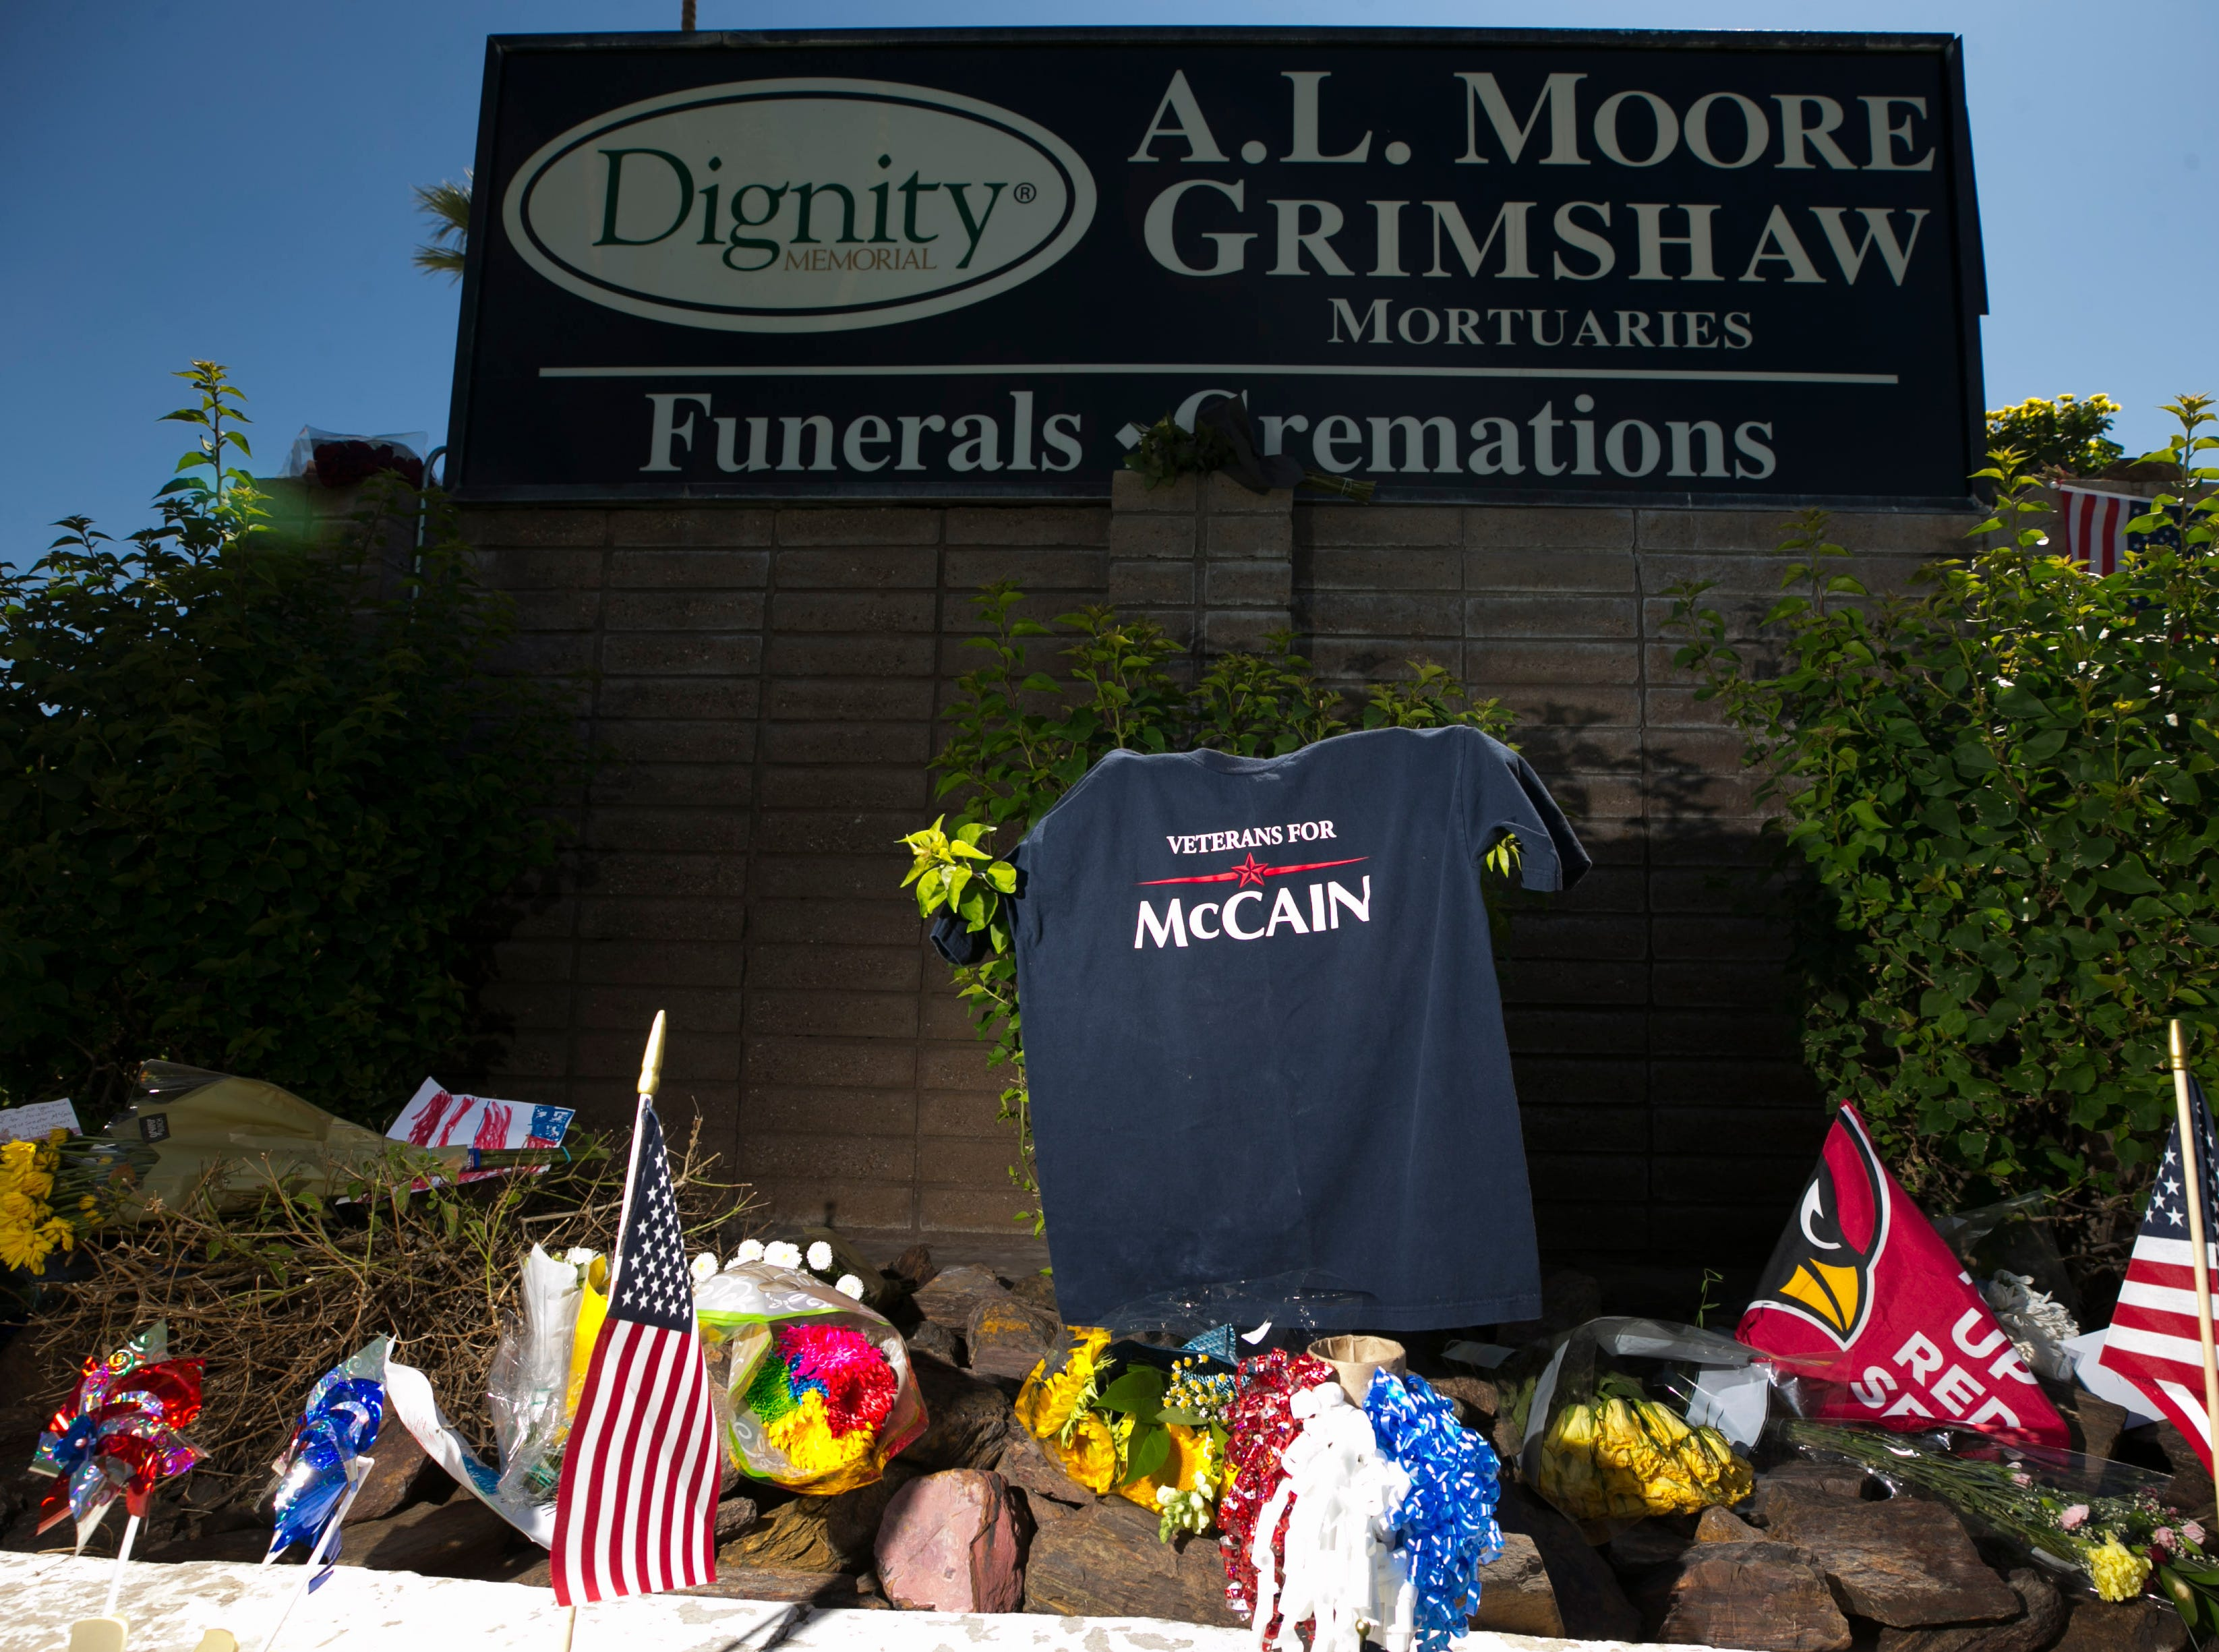 A memorial for Sen. John McCain at A.L. Moore-Grimshaw Mortuaries  in Phoenix, on Monday morning, August 27, 2018.